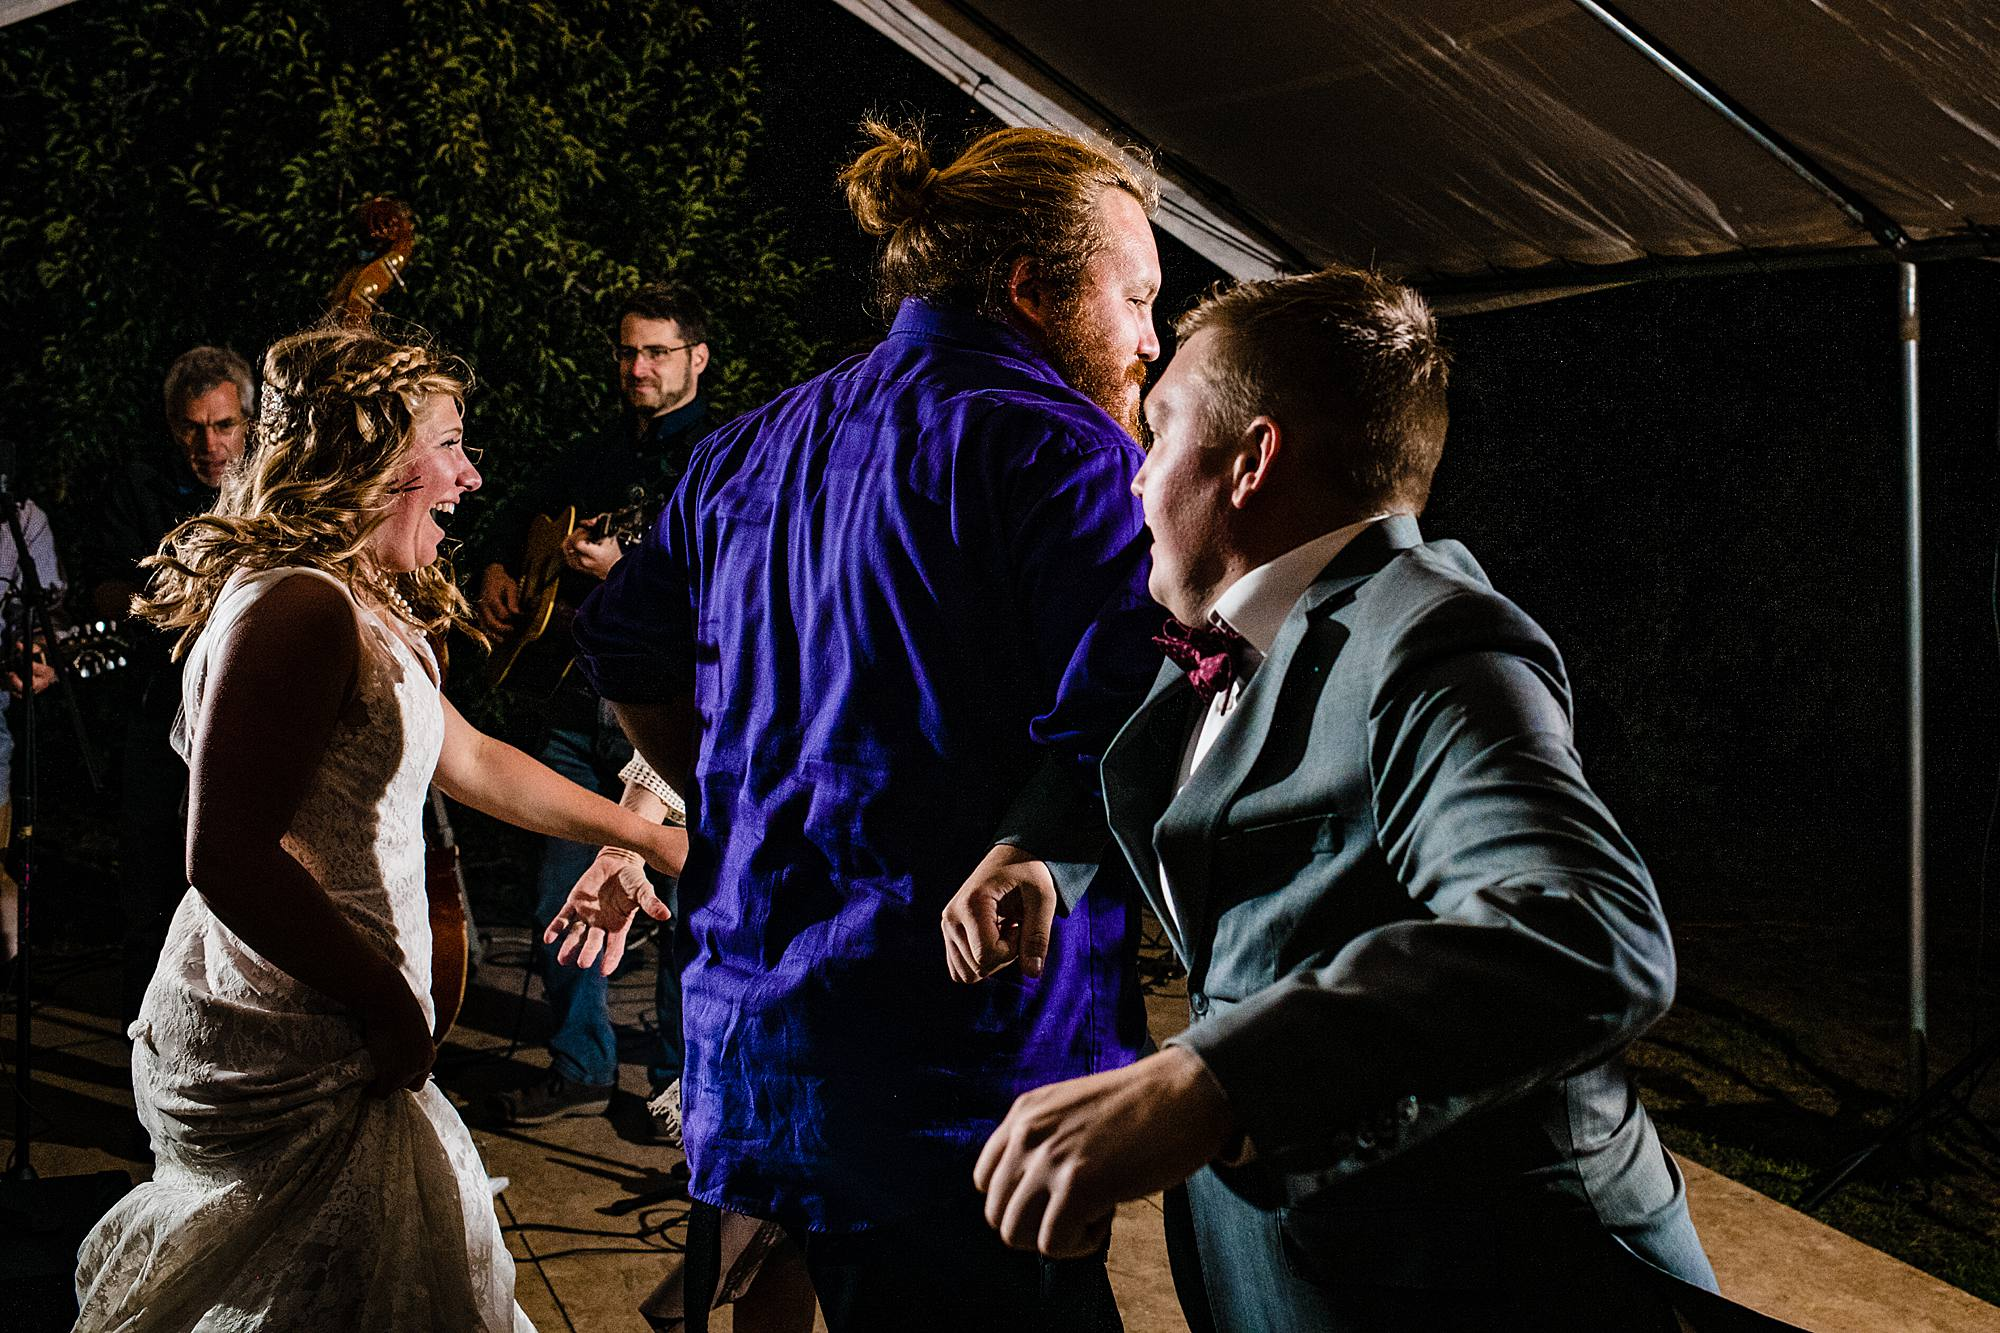 dancing to who hit john - west michigan wedding photographer